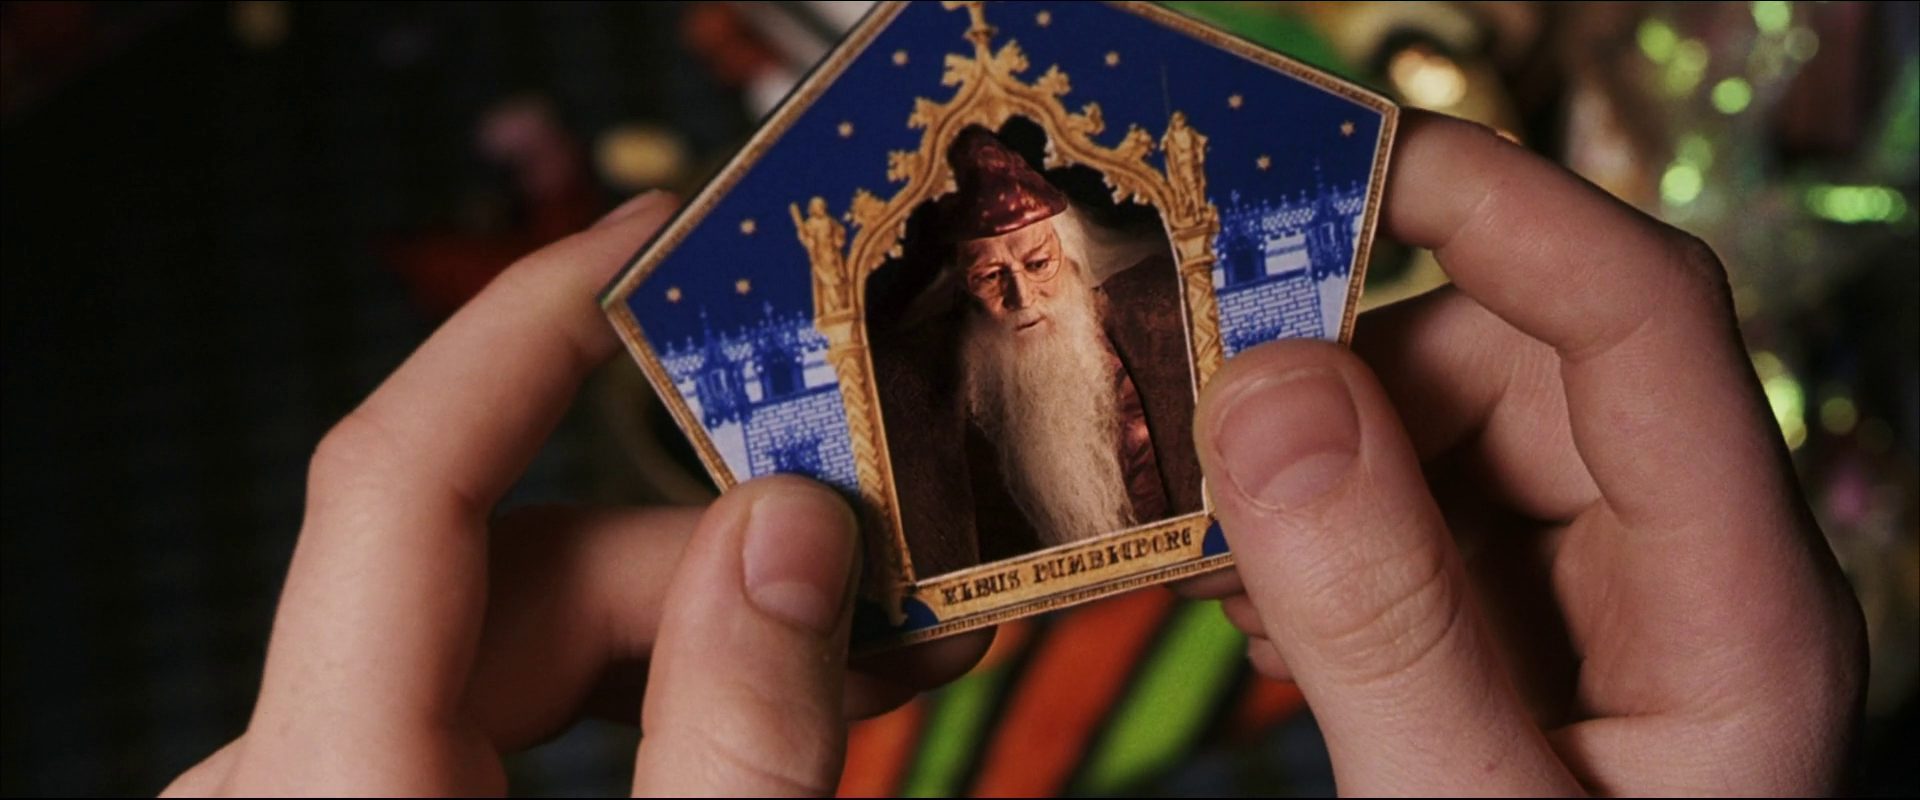 Albus Dumbledore (Chocolate Frog Card)